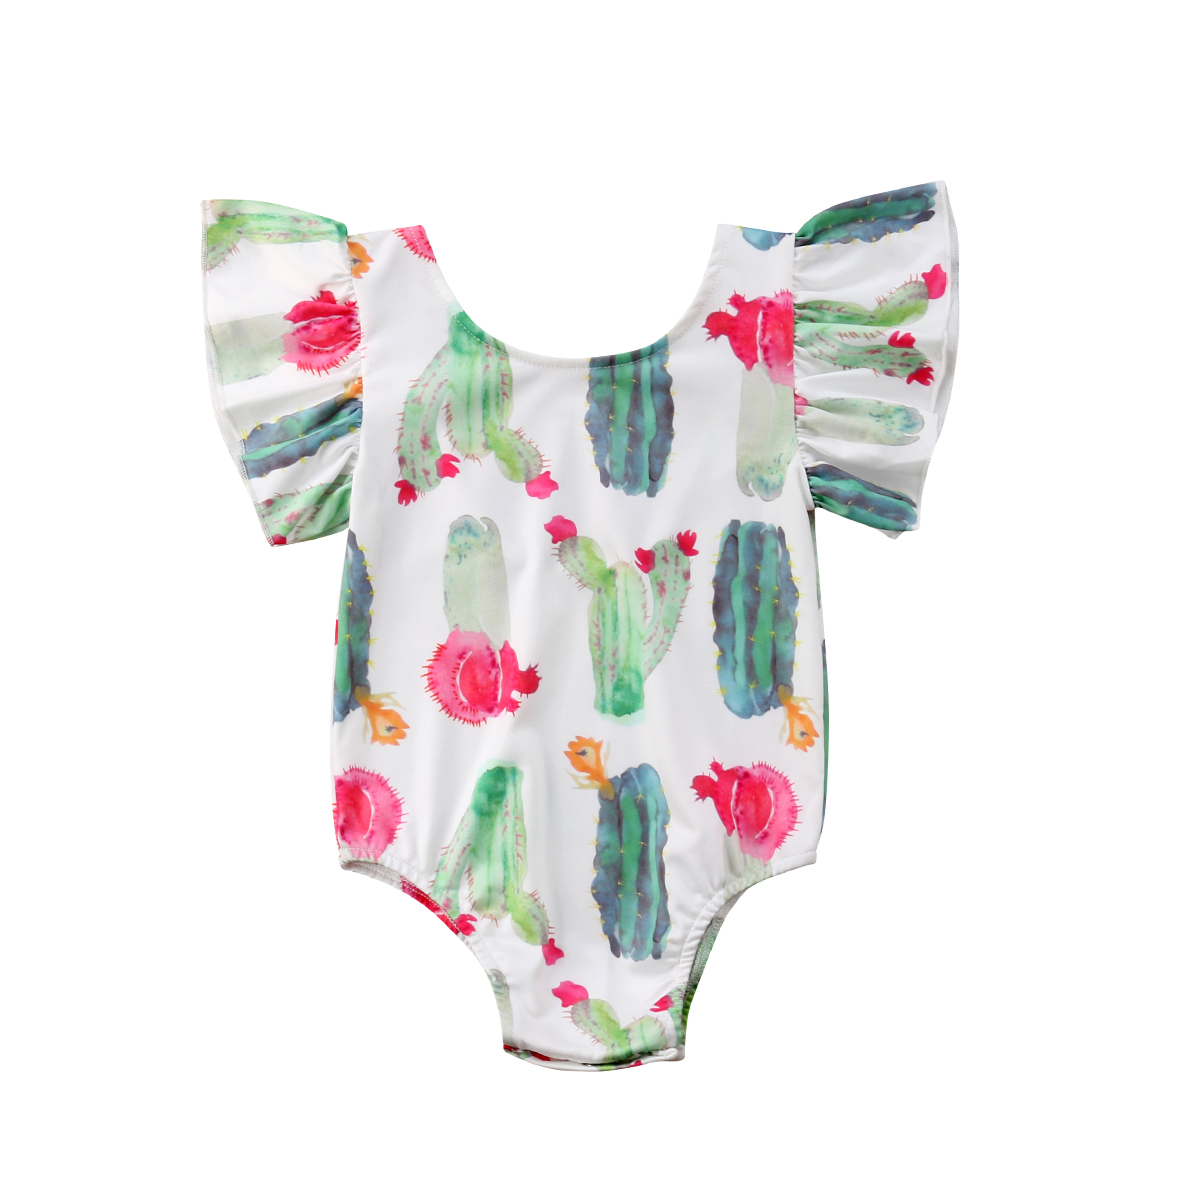 Newborn Infant Baby Girl Cactus Rompers Short Sleeves Summer Clothes Jumpsuit Playsuits Baby Girls Clothing 2018 flower baby girls clothing newborn baby girl floral rompers long sleeve jumpsuit playsuit summer baby girls clothes